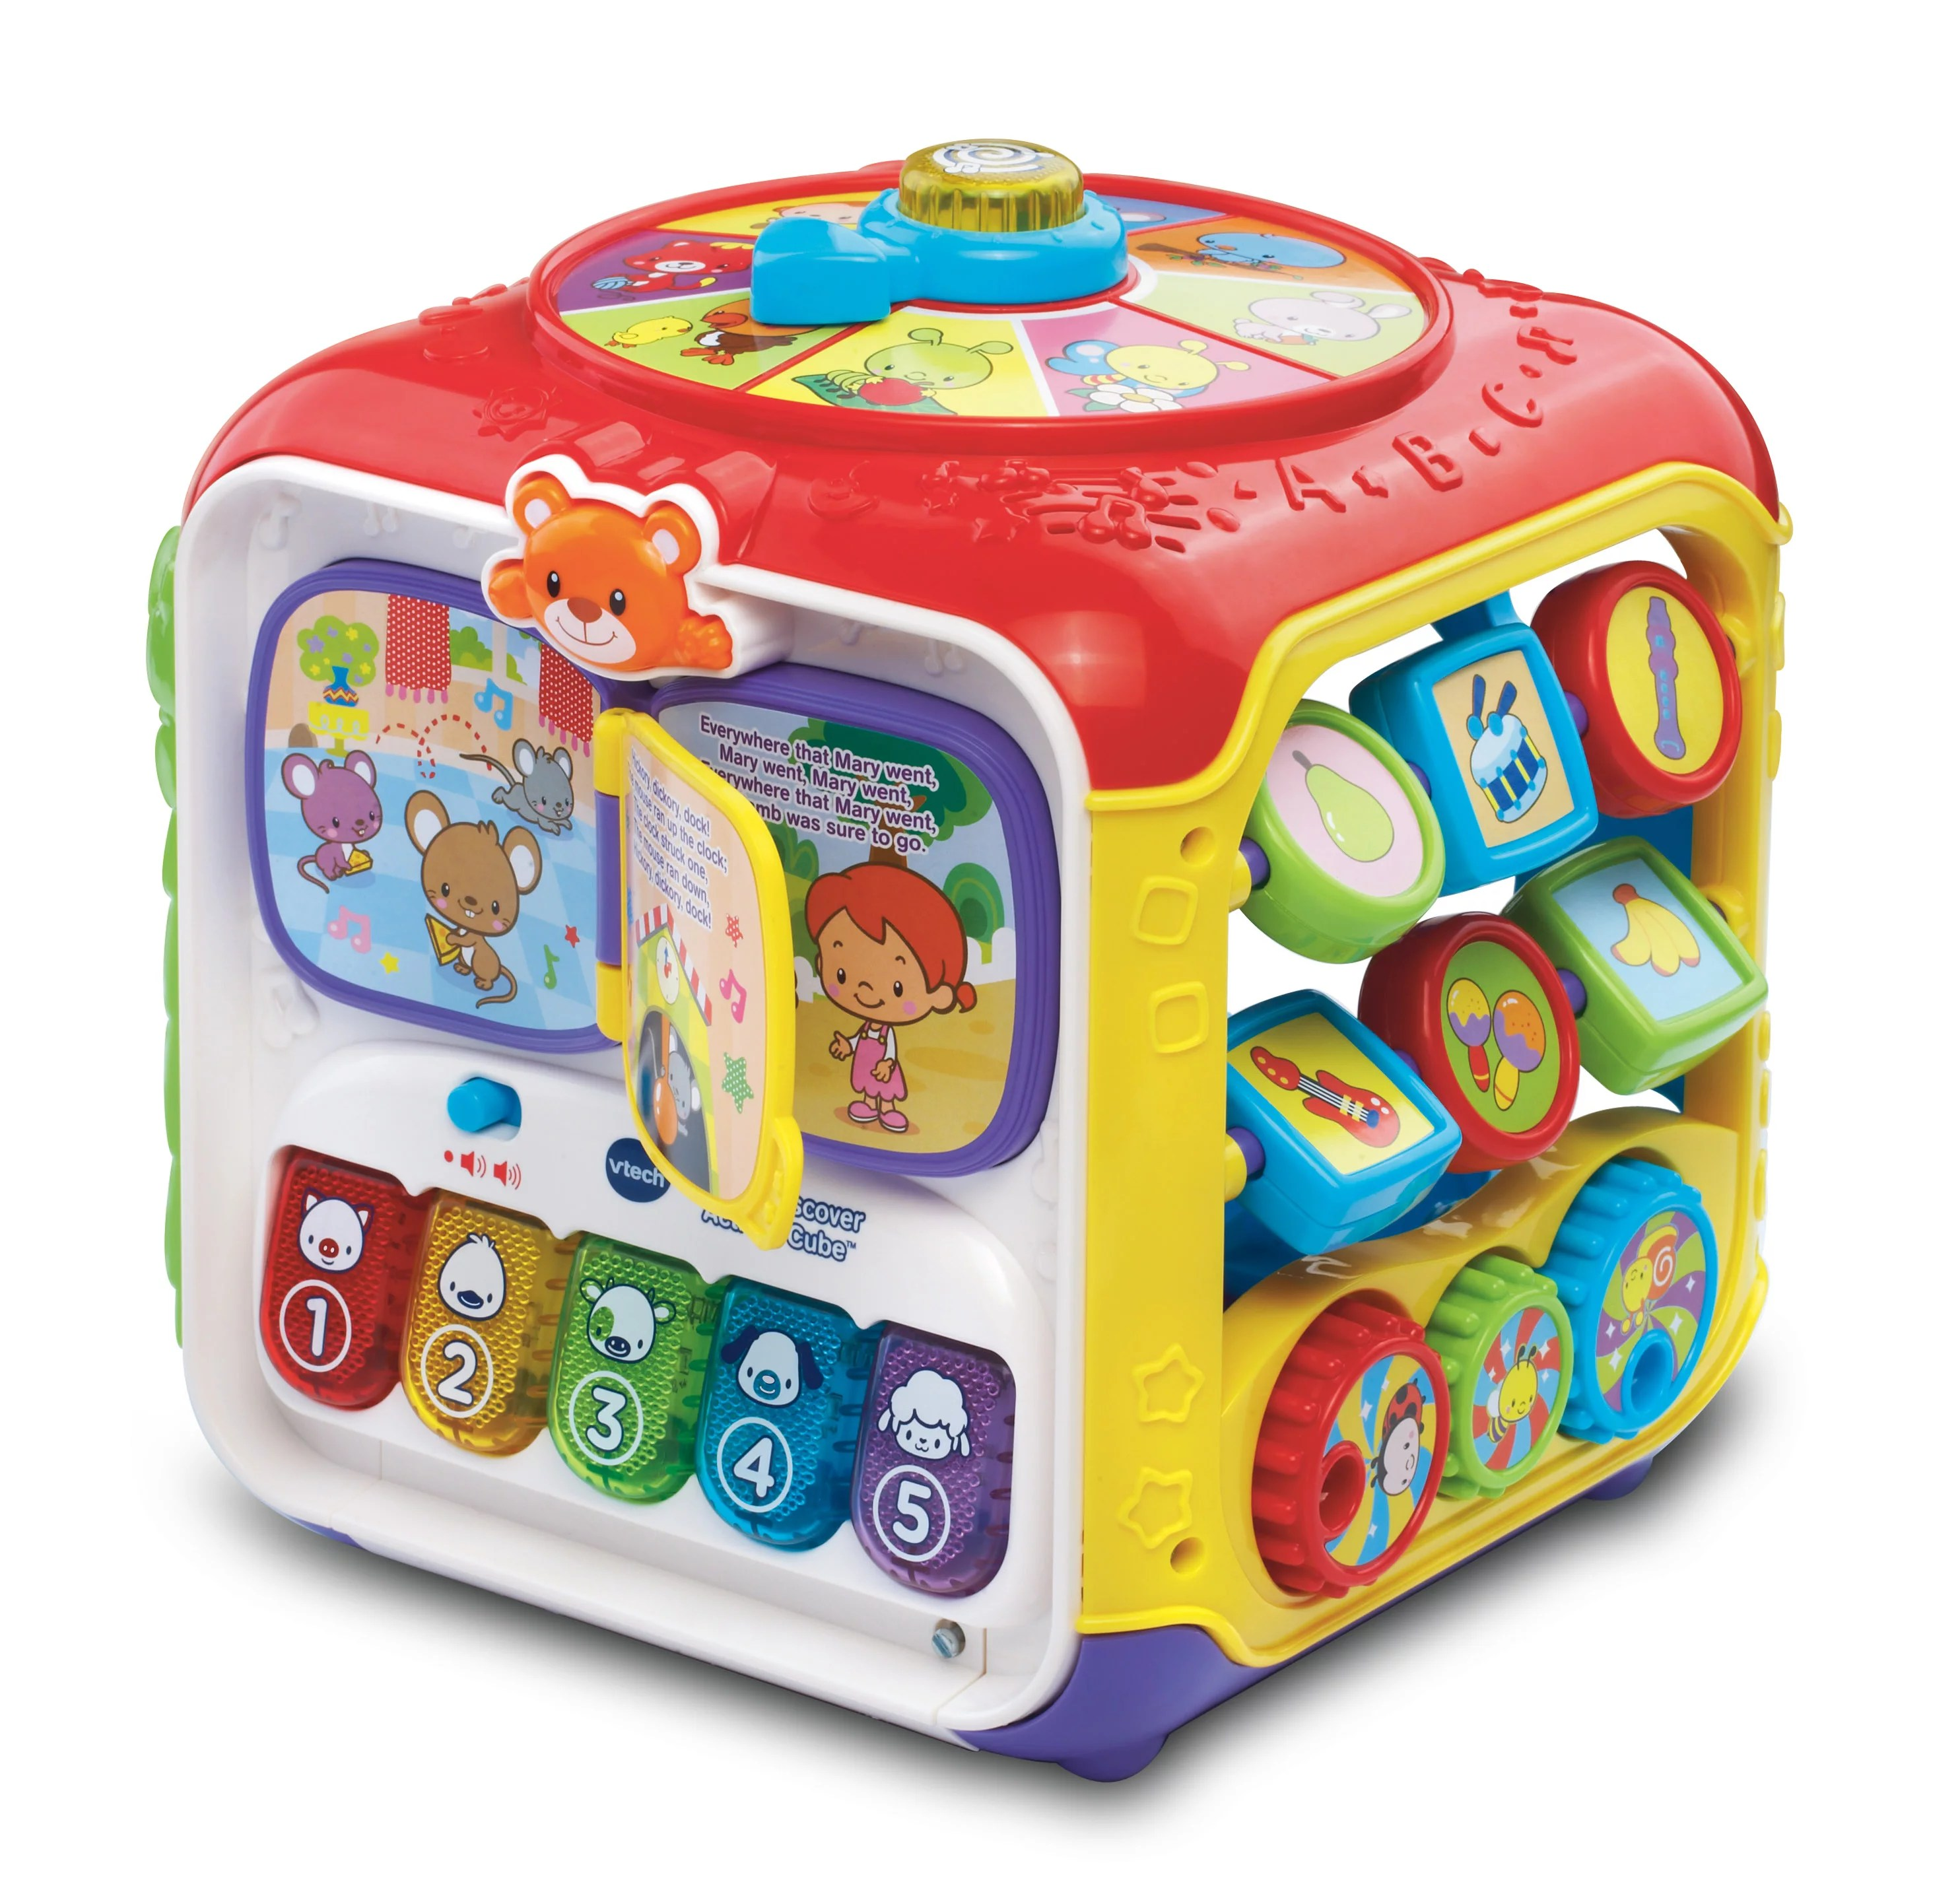 Babies Interactive Toys Best Choice Products Kids Toddlers Musical Activity Cube Play Toy W 15 Functions Lights And Sounds Multicolor